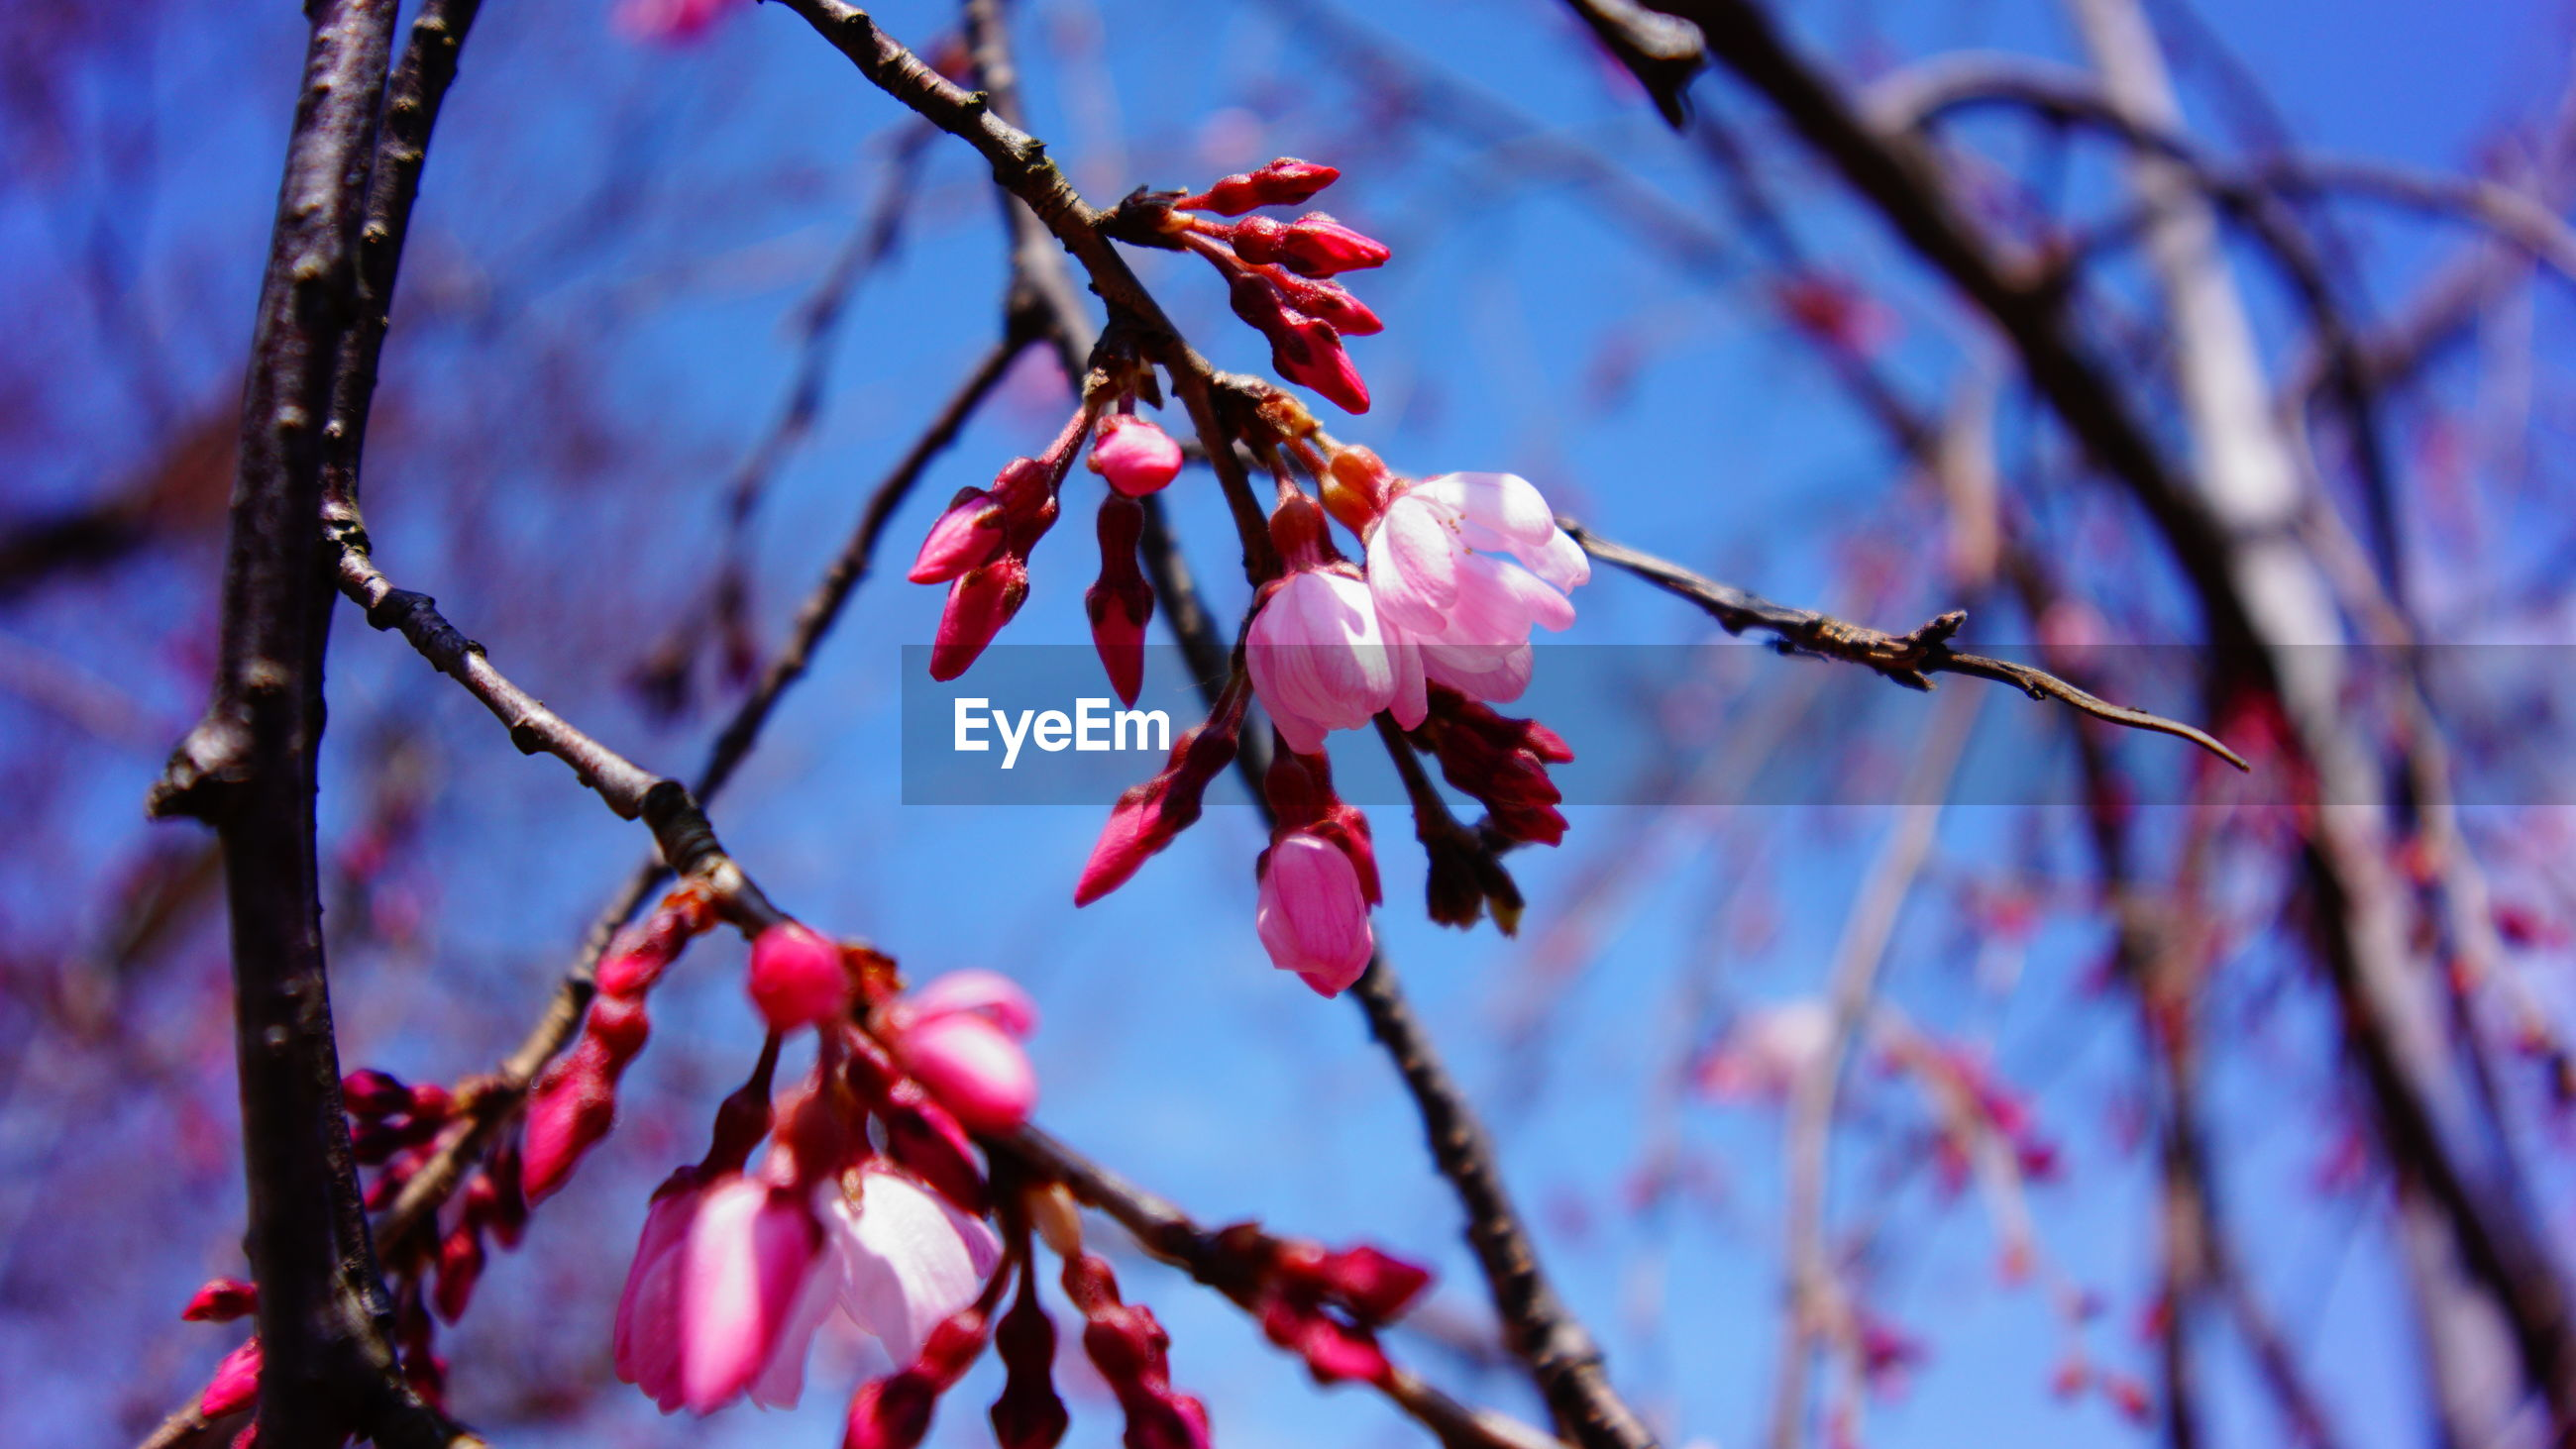 branch, tree, focus on foreground, growth, flower, close-up, twig, nature, beauty in nature, fragility, season, freshness, pink color, low angle view, blossom, selective focus, outdoors, sky, day, leaf